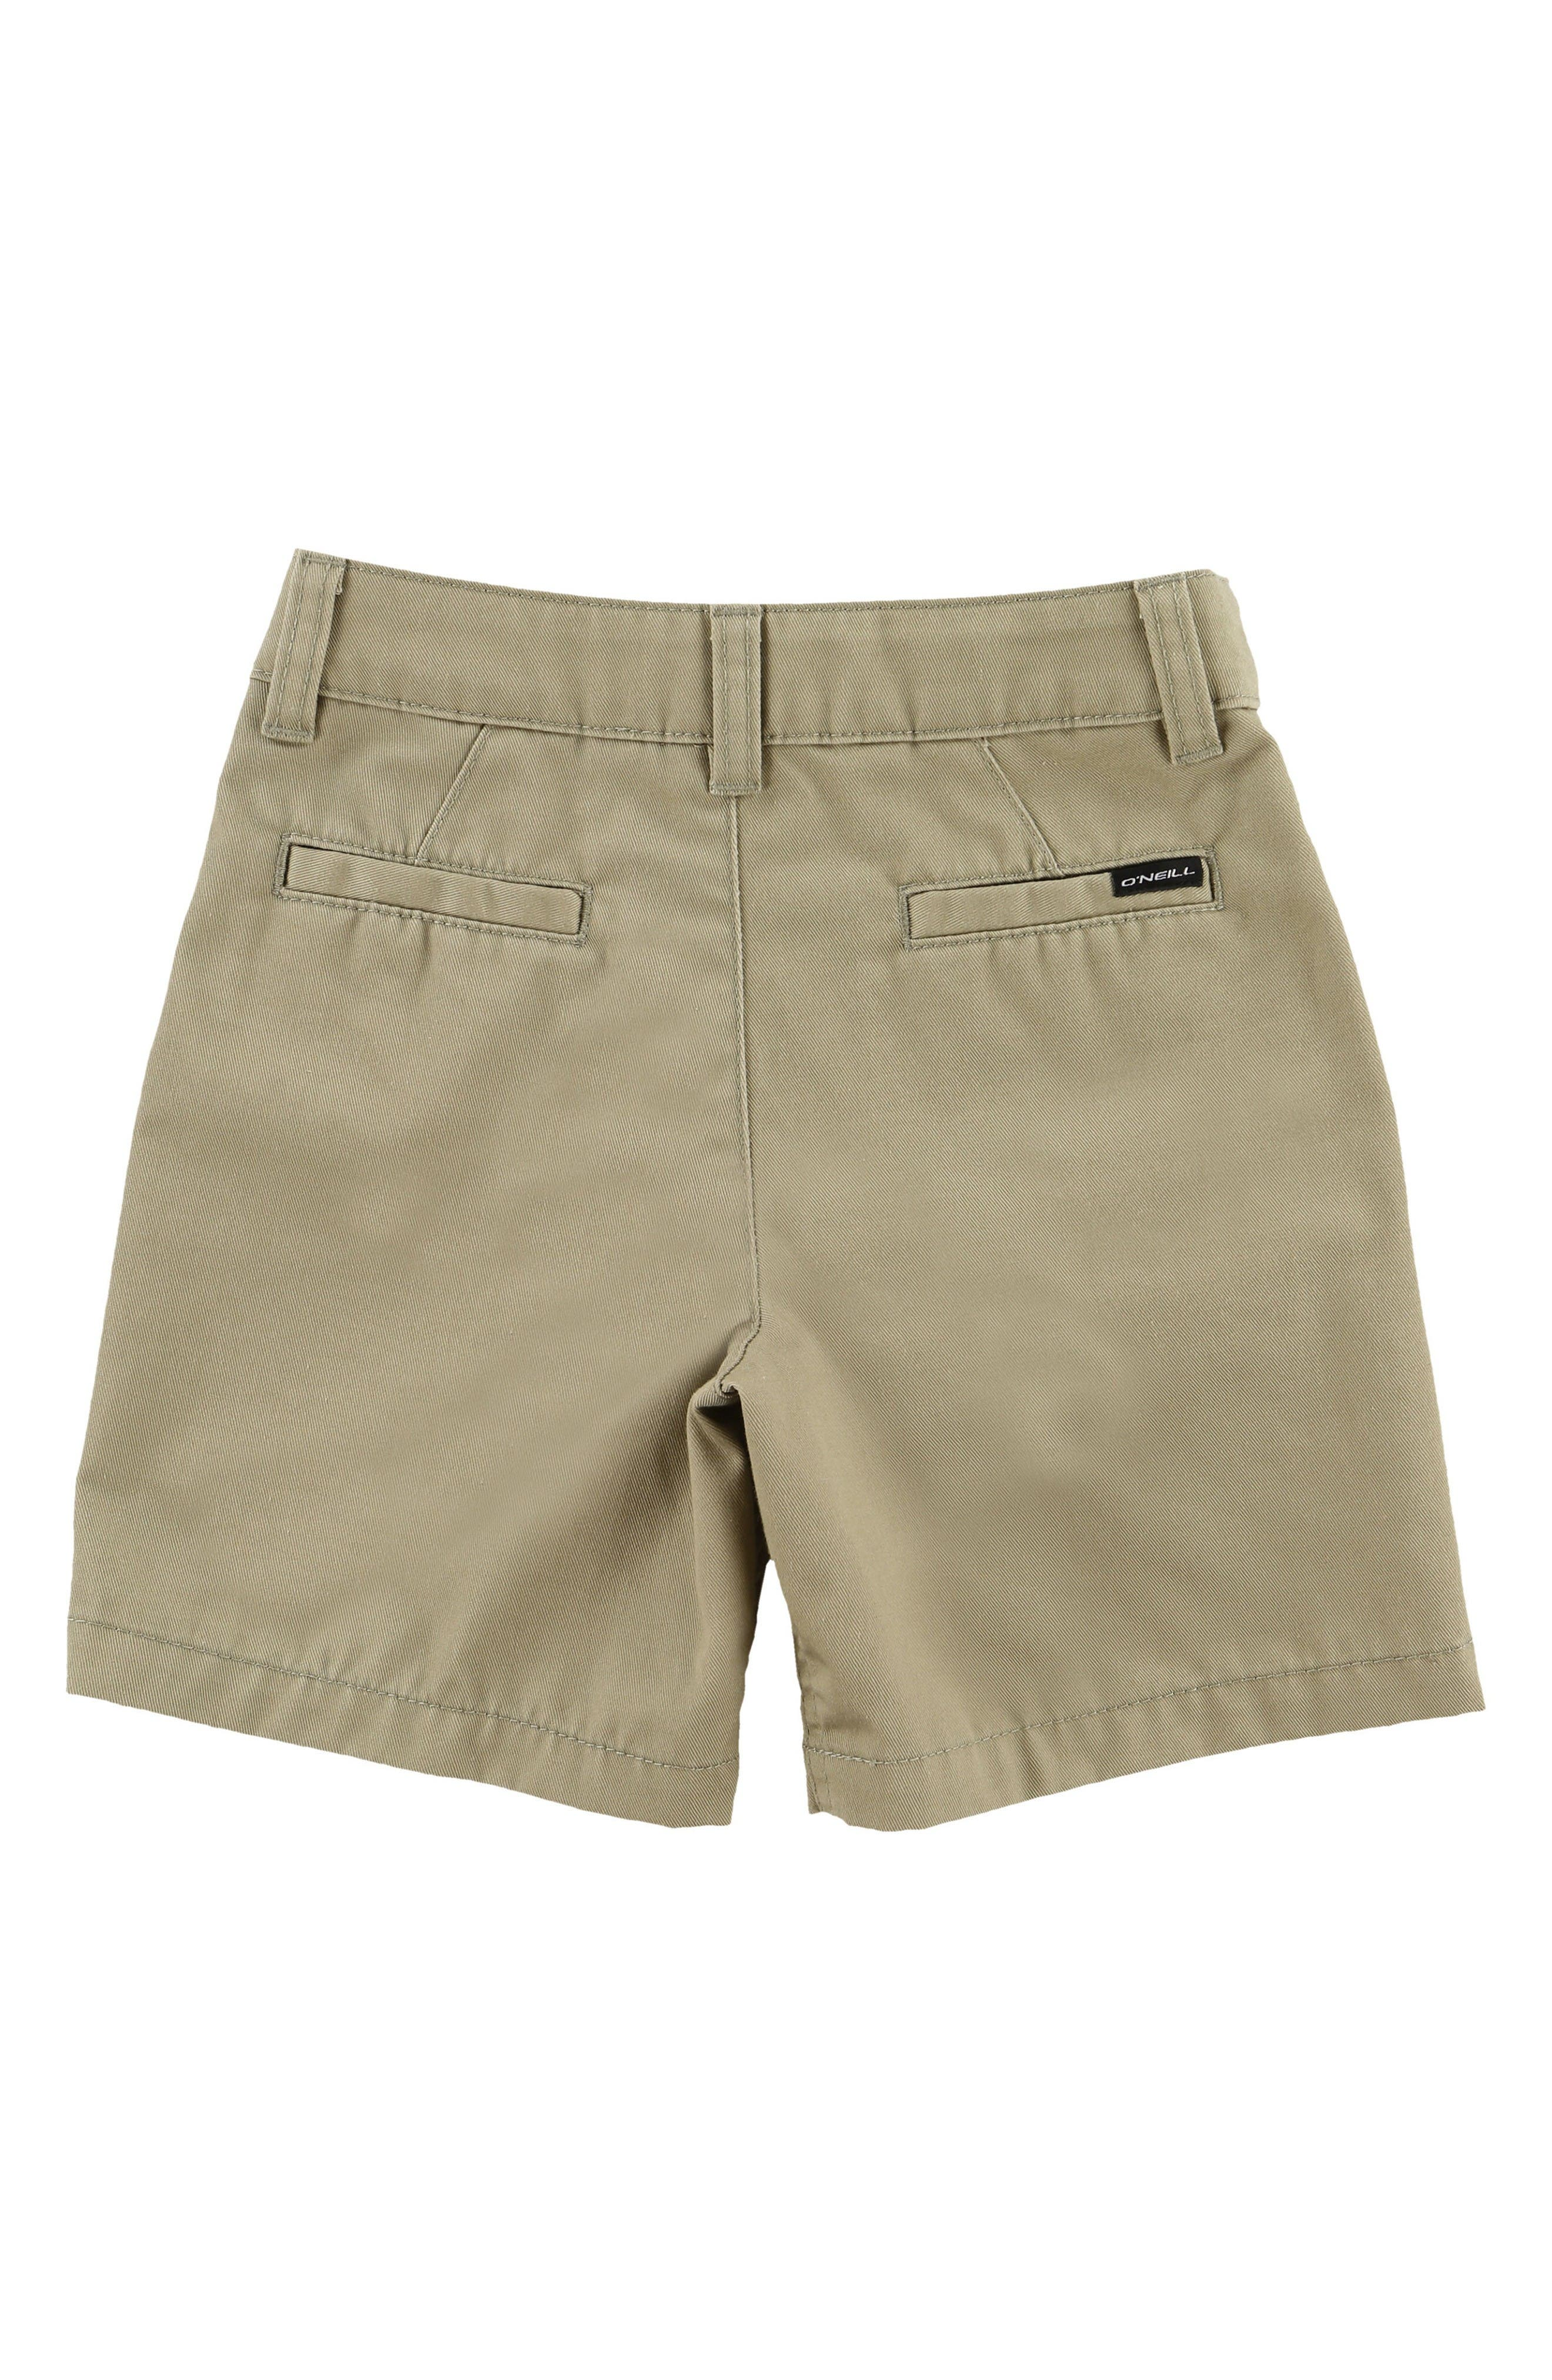 Contact Twill Walking Shorts,                             Alternate thumbnail 2, color,                             Oneill Kha